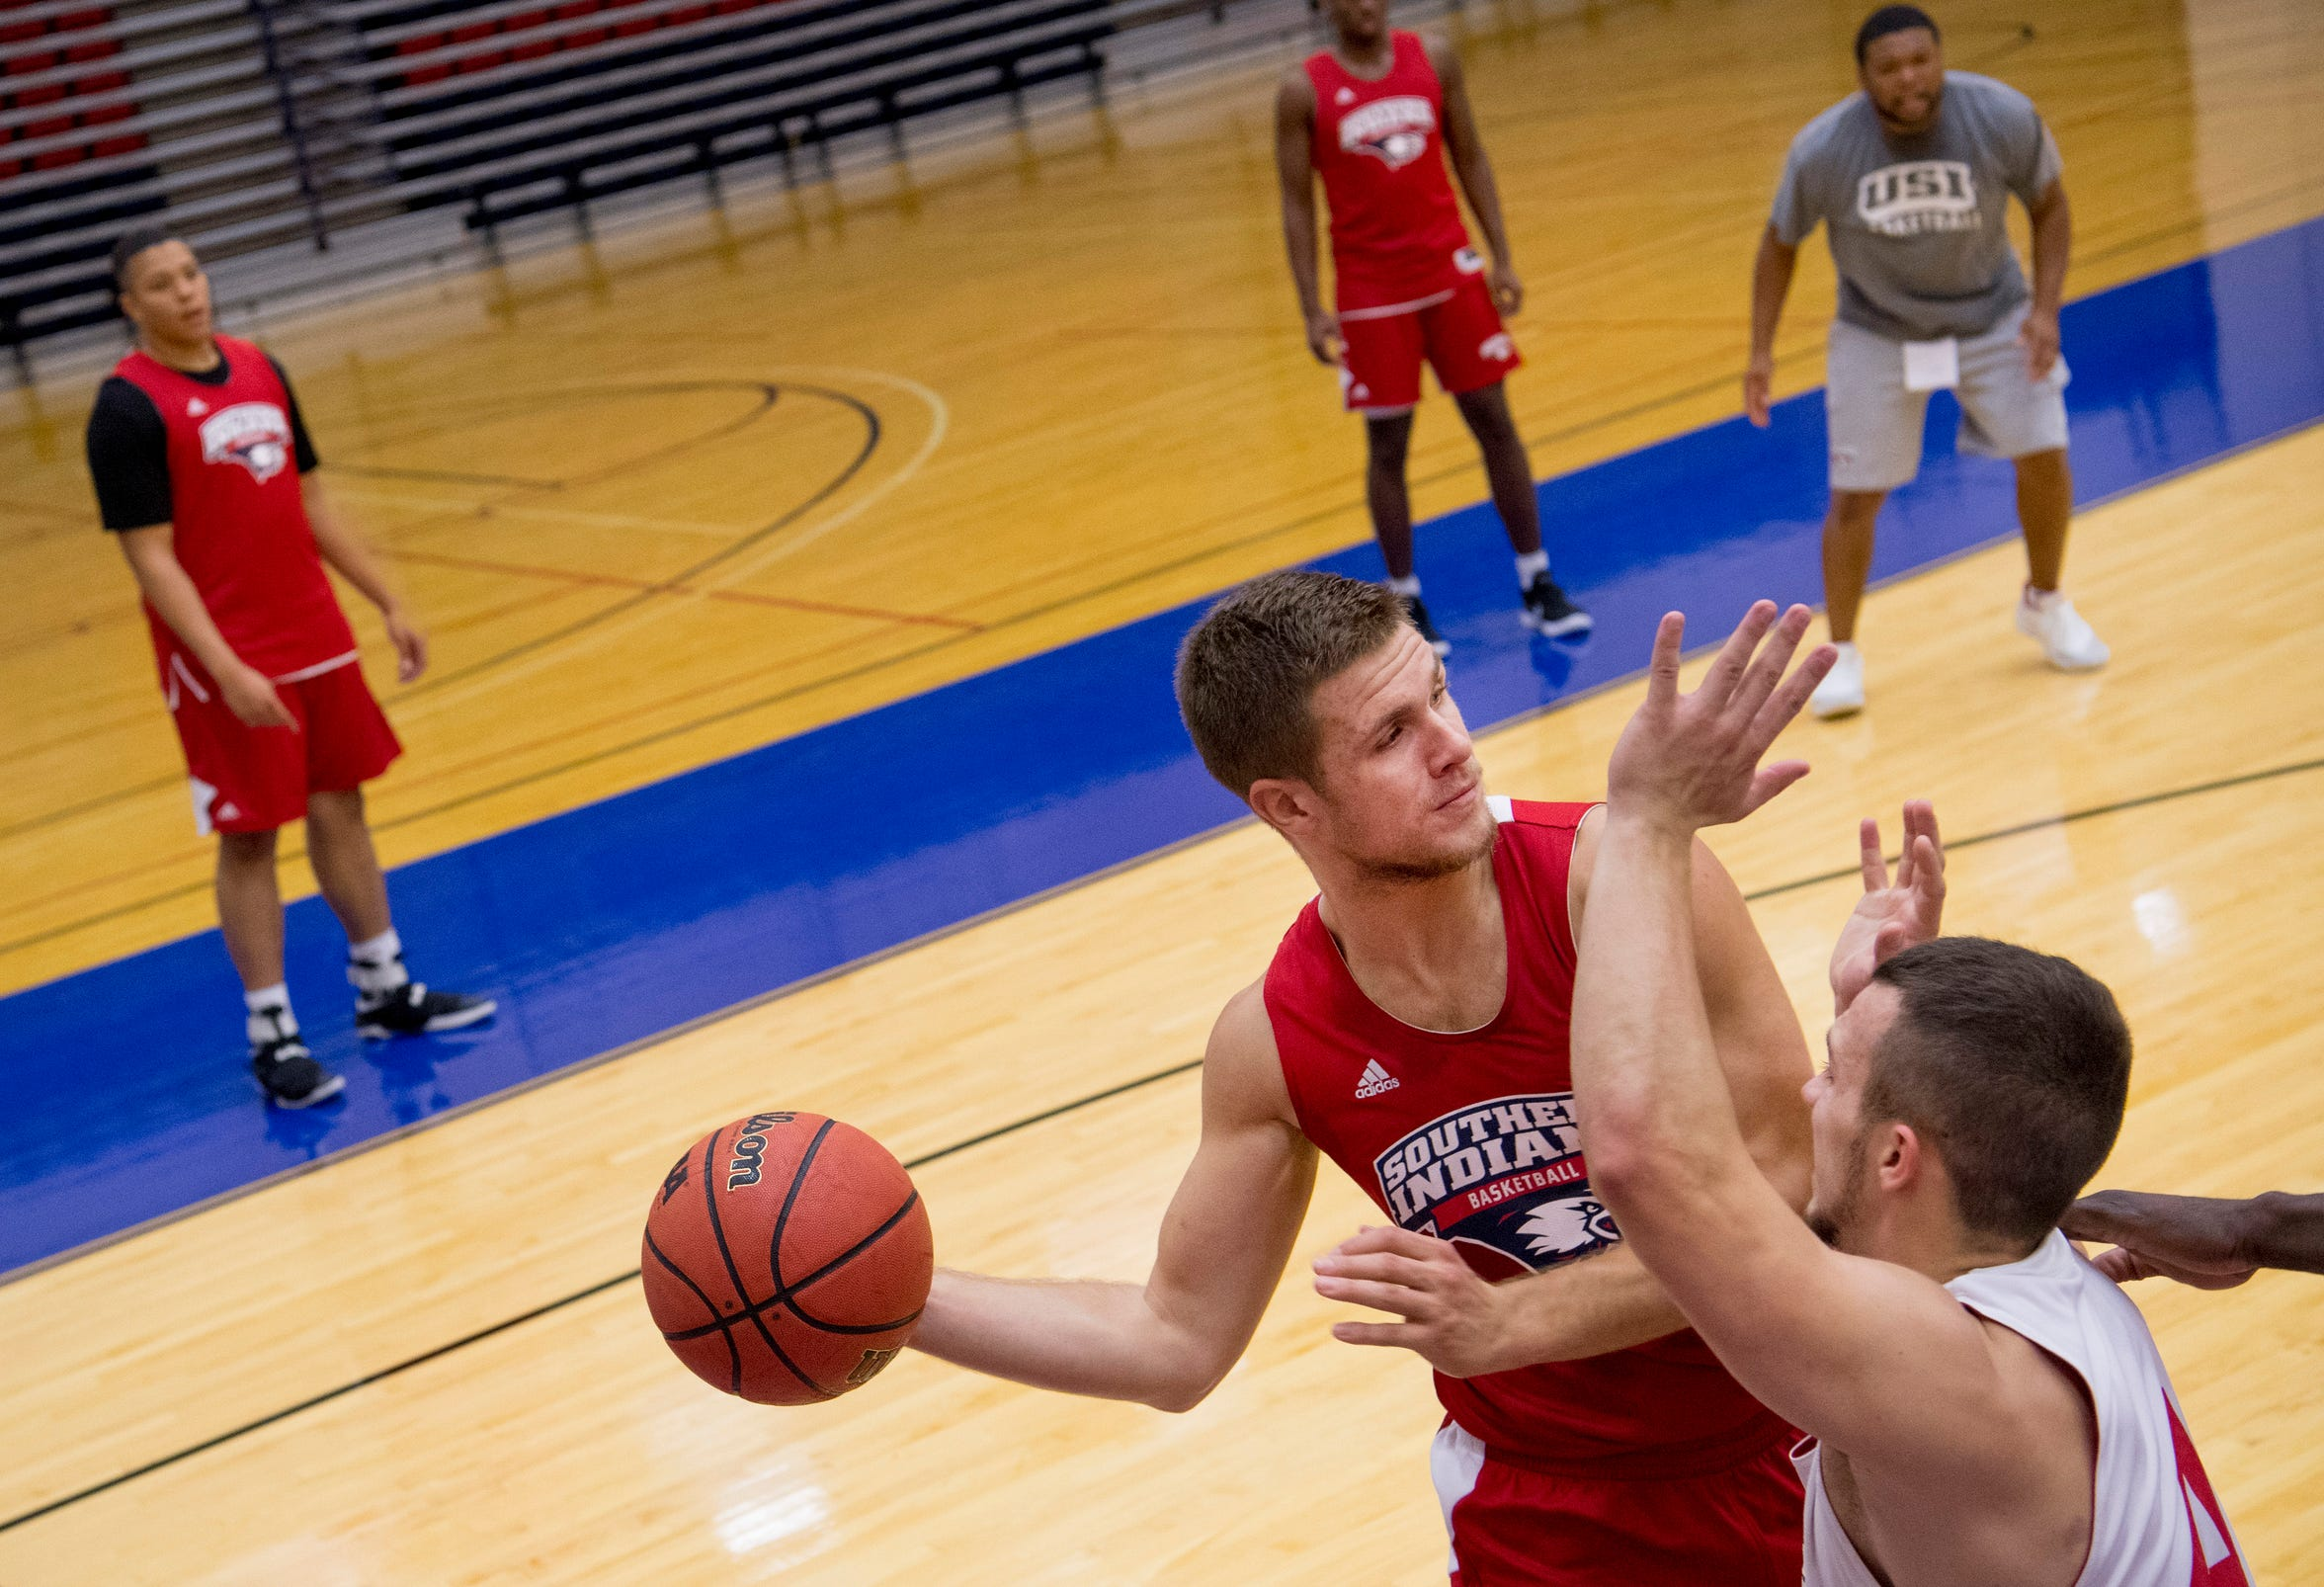 Alex Stein makes a baseline pass around teammate Braden Fitzjerrells during USI's first practice of the season last Monday.